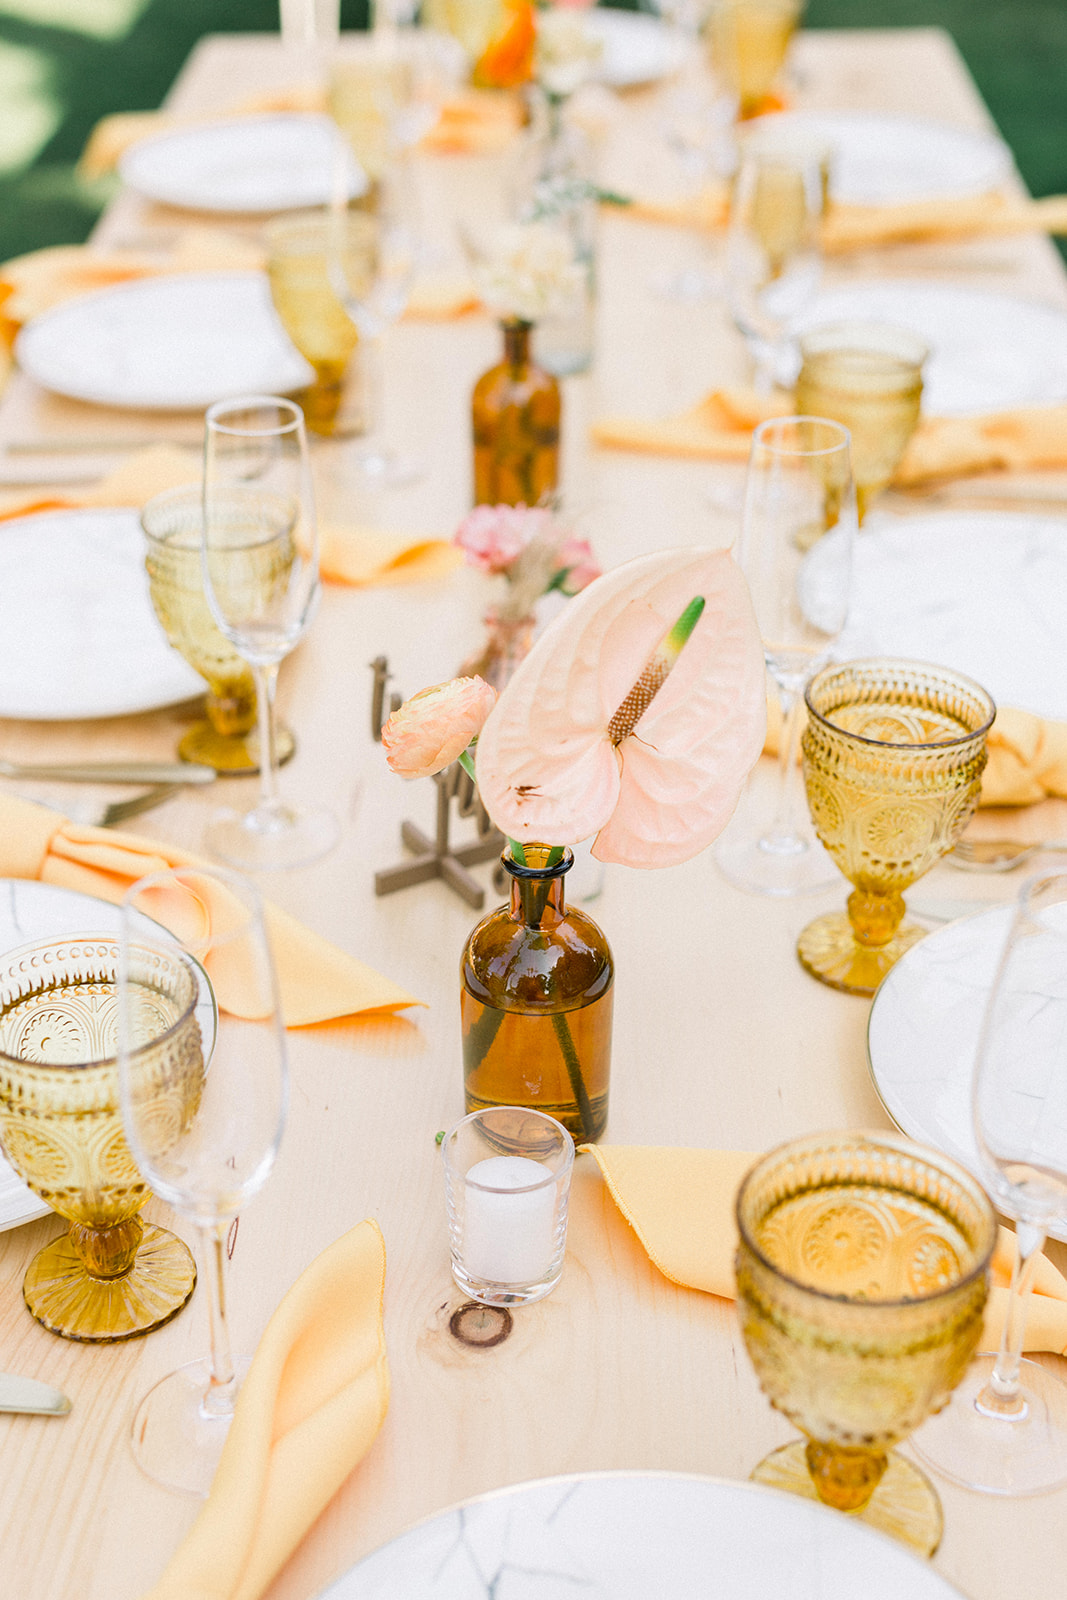 Amber bottles as centerpieces for colorful wedding